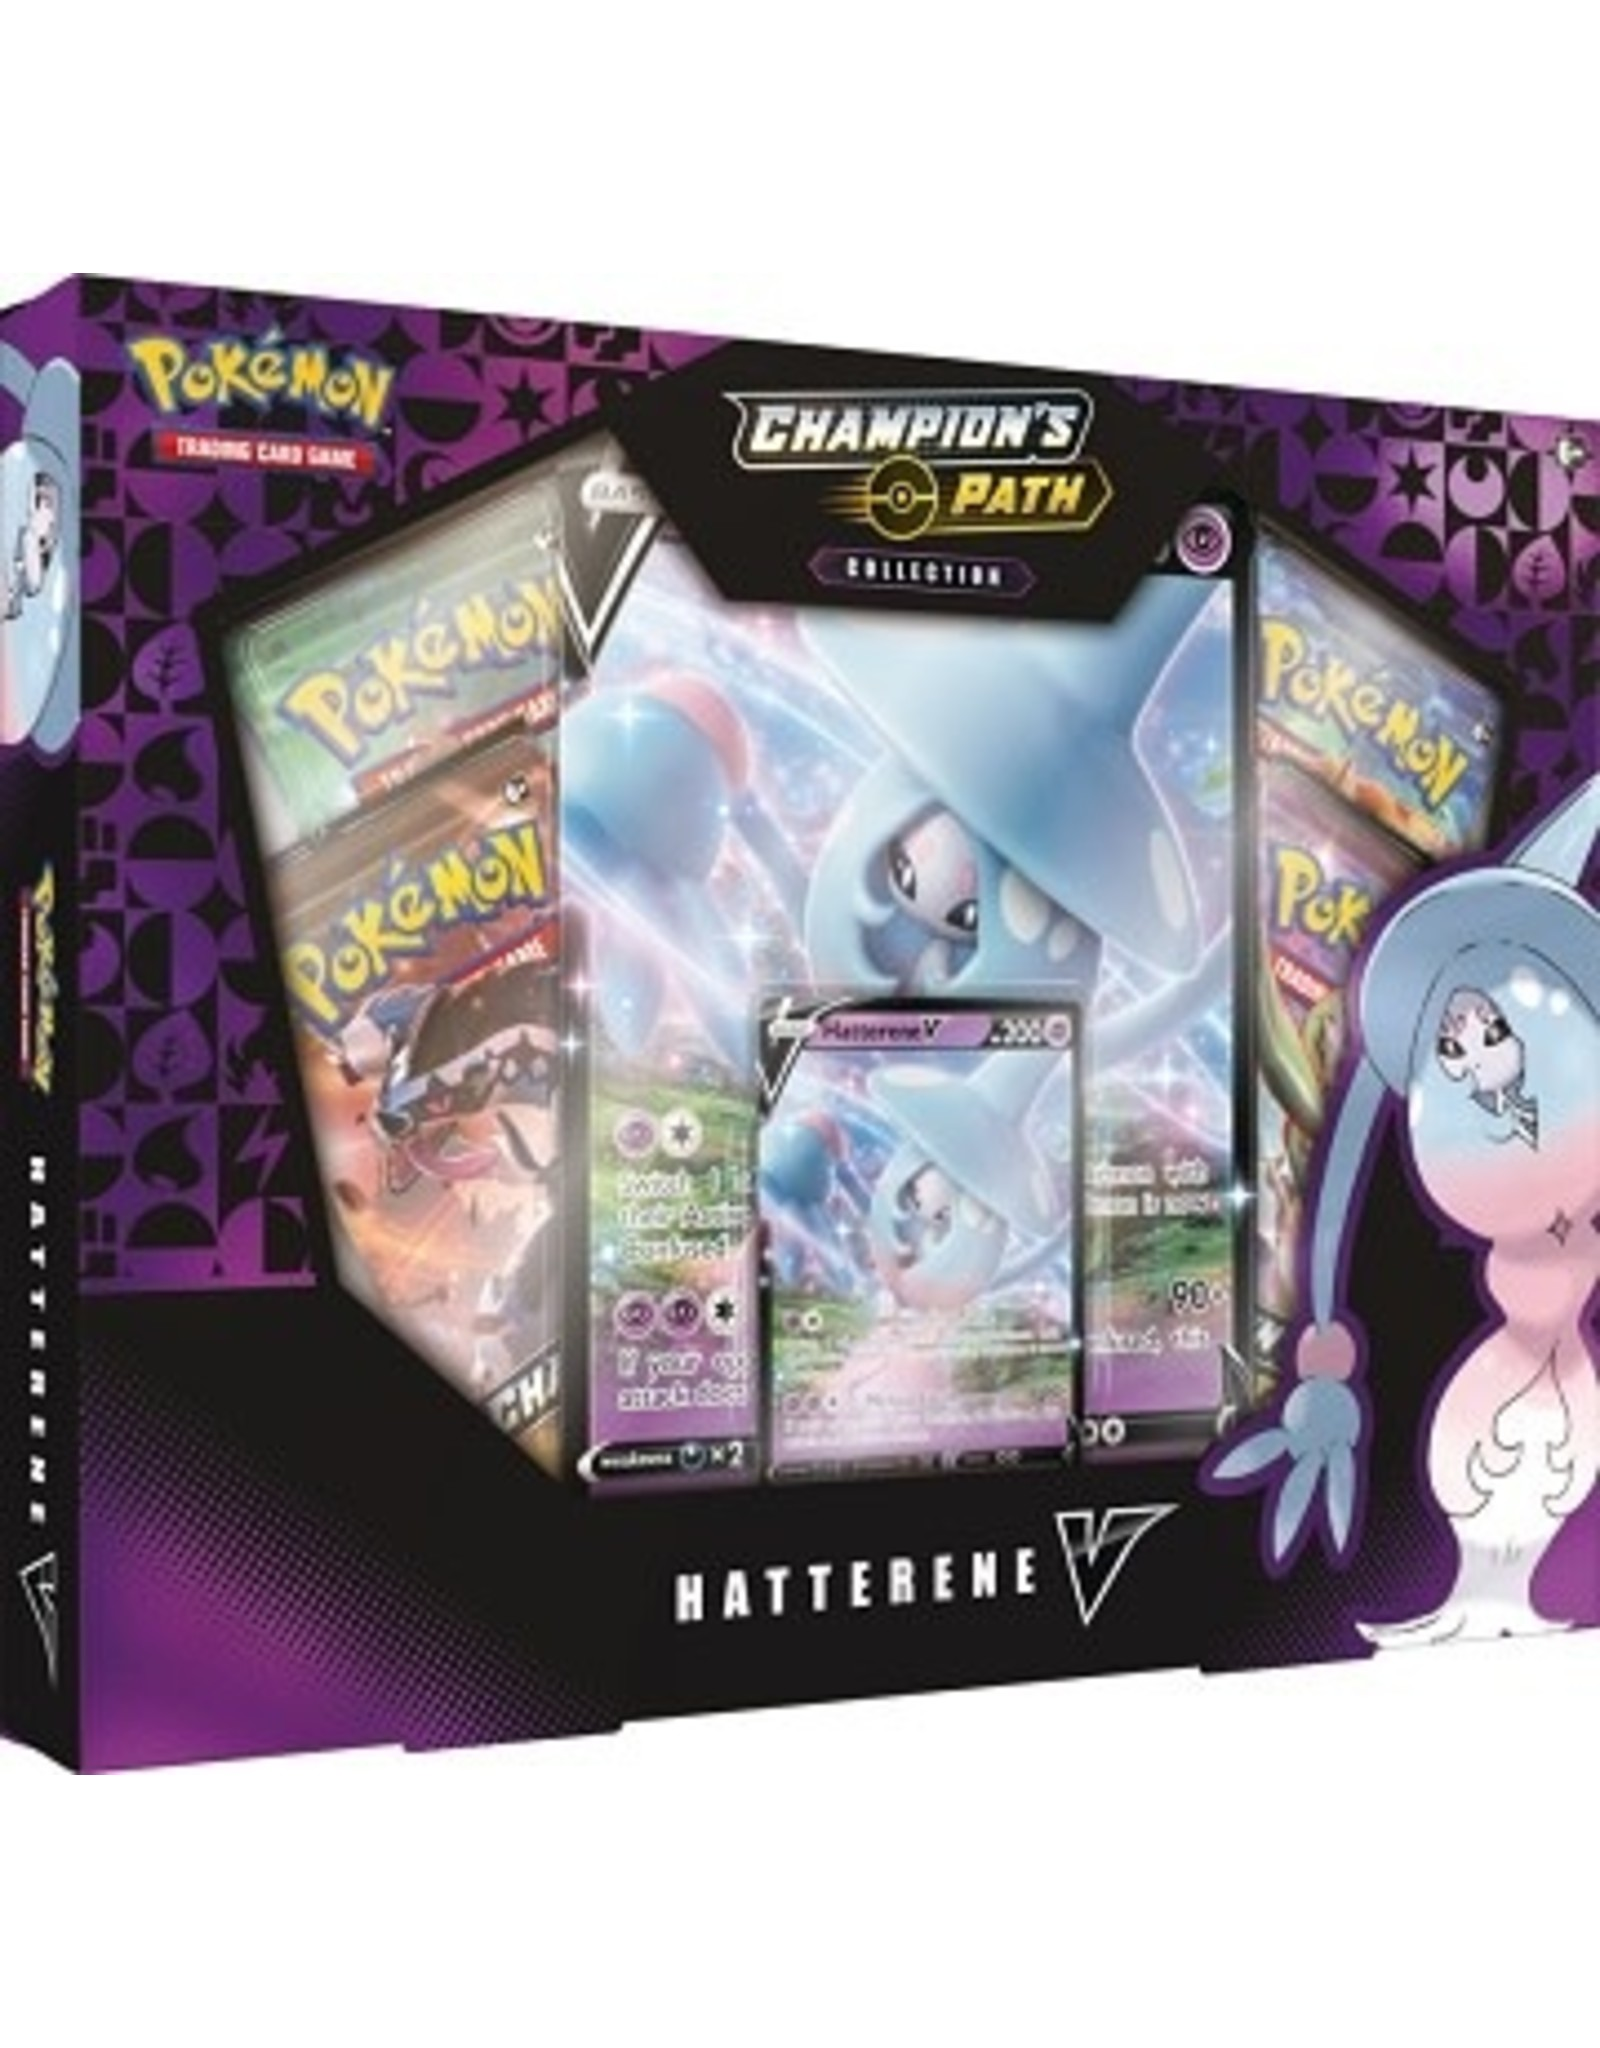 POKEMON POKEMON CHAMPION'S PATH HATTERENE V COLLECTION